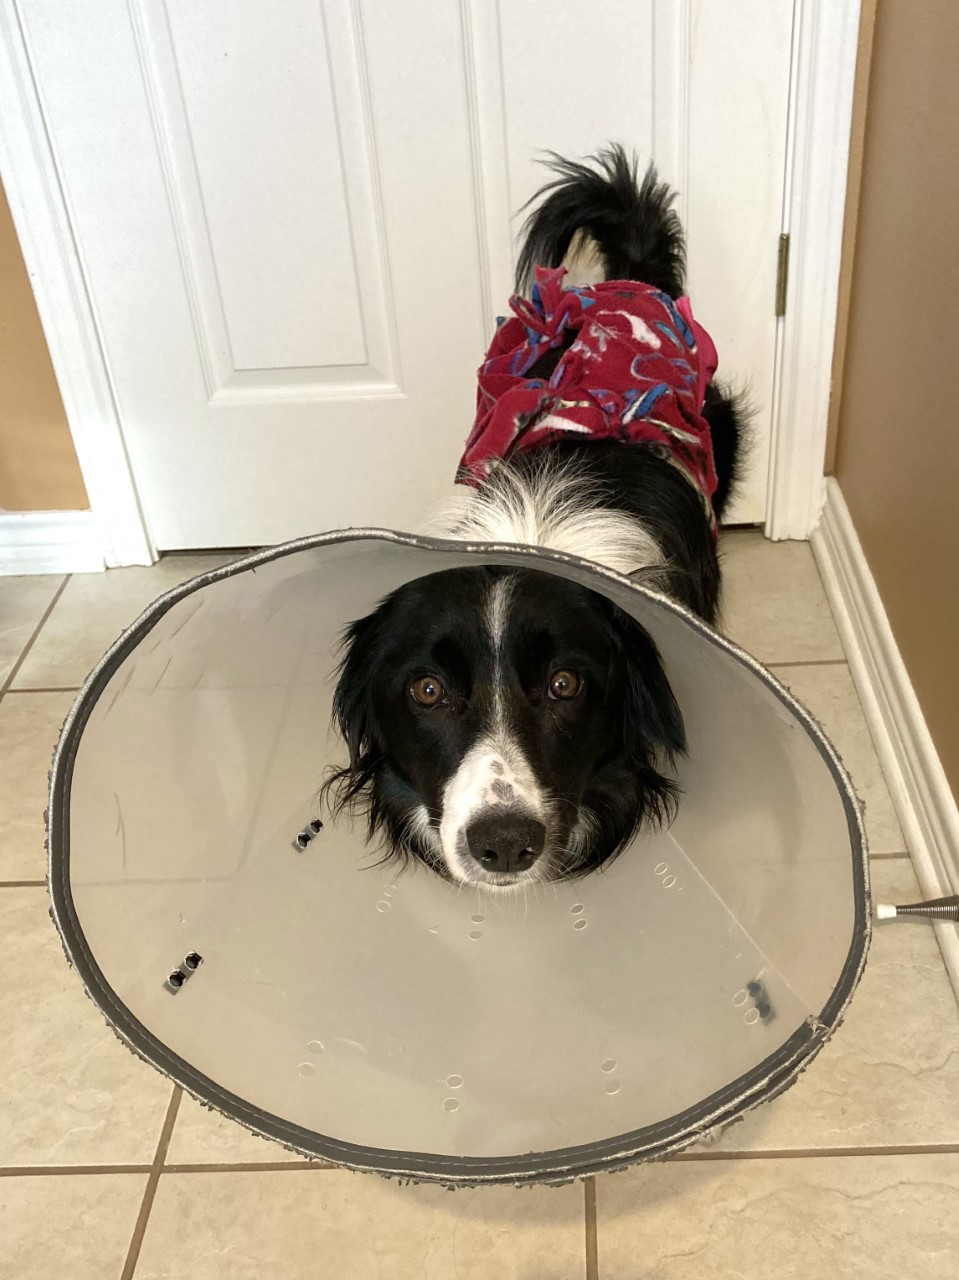 A border collie in a corset, panties, and a surgical cone.